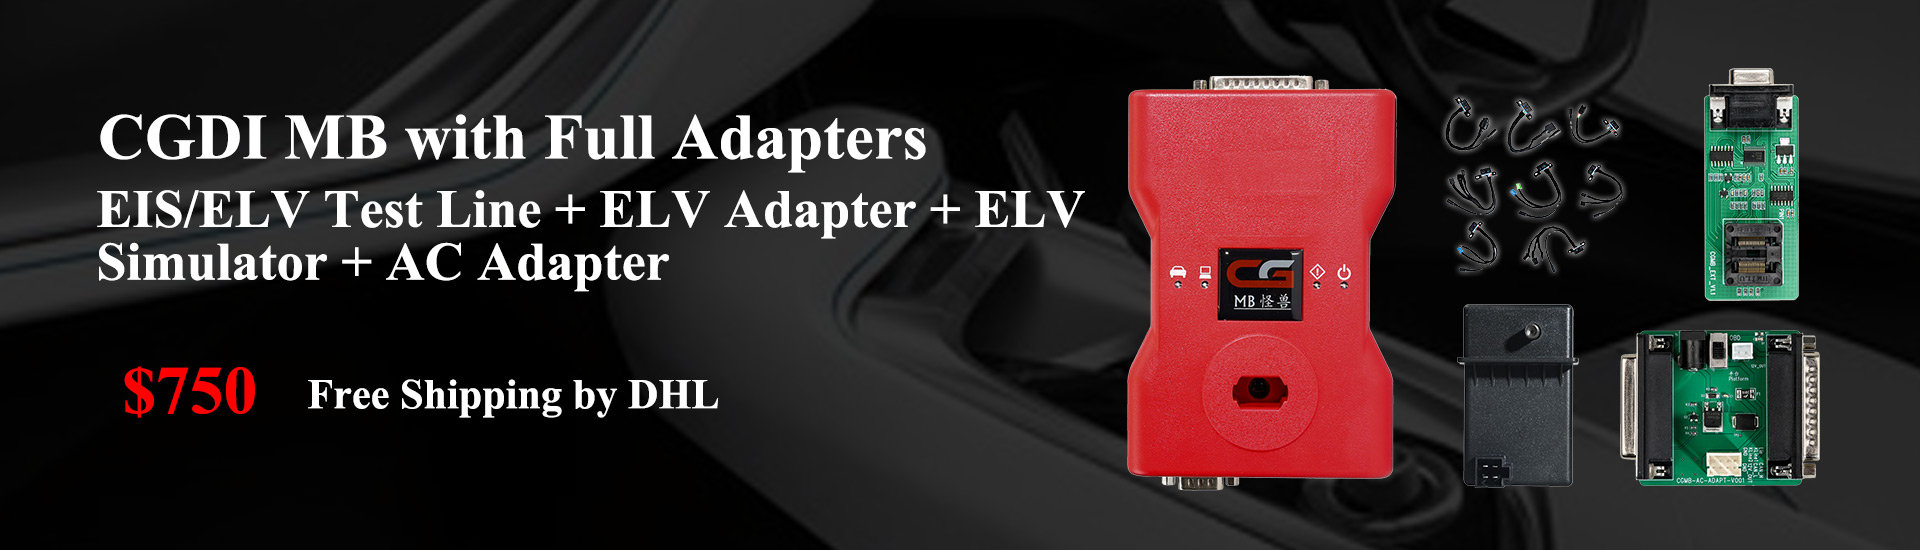 CGDI MB with Full Adapters including ELV Test Line + ELV Adapter + ELV Simulator + AC Adapter